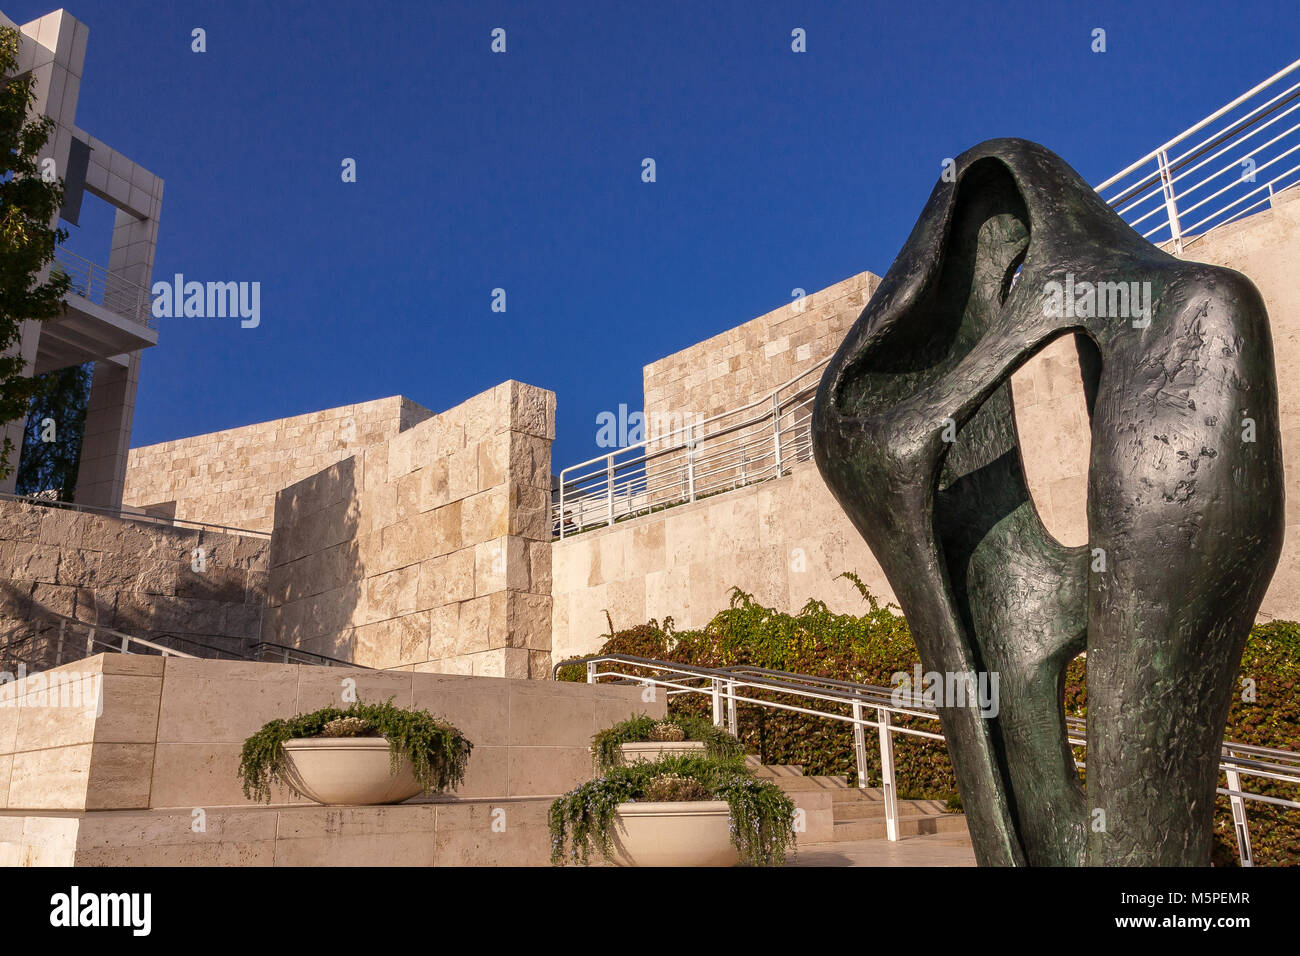 Barbara Hepworth's sculpture Figure for Landscape at The Fran and Ray Stark Sculpture Terrace, The Getty Center - Stock Image